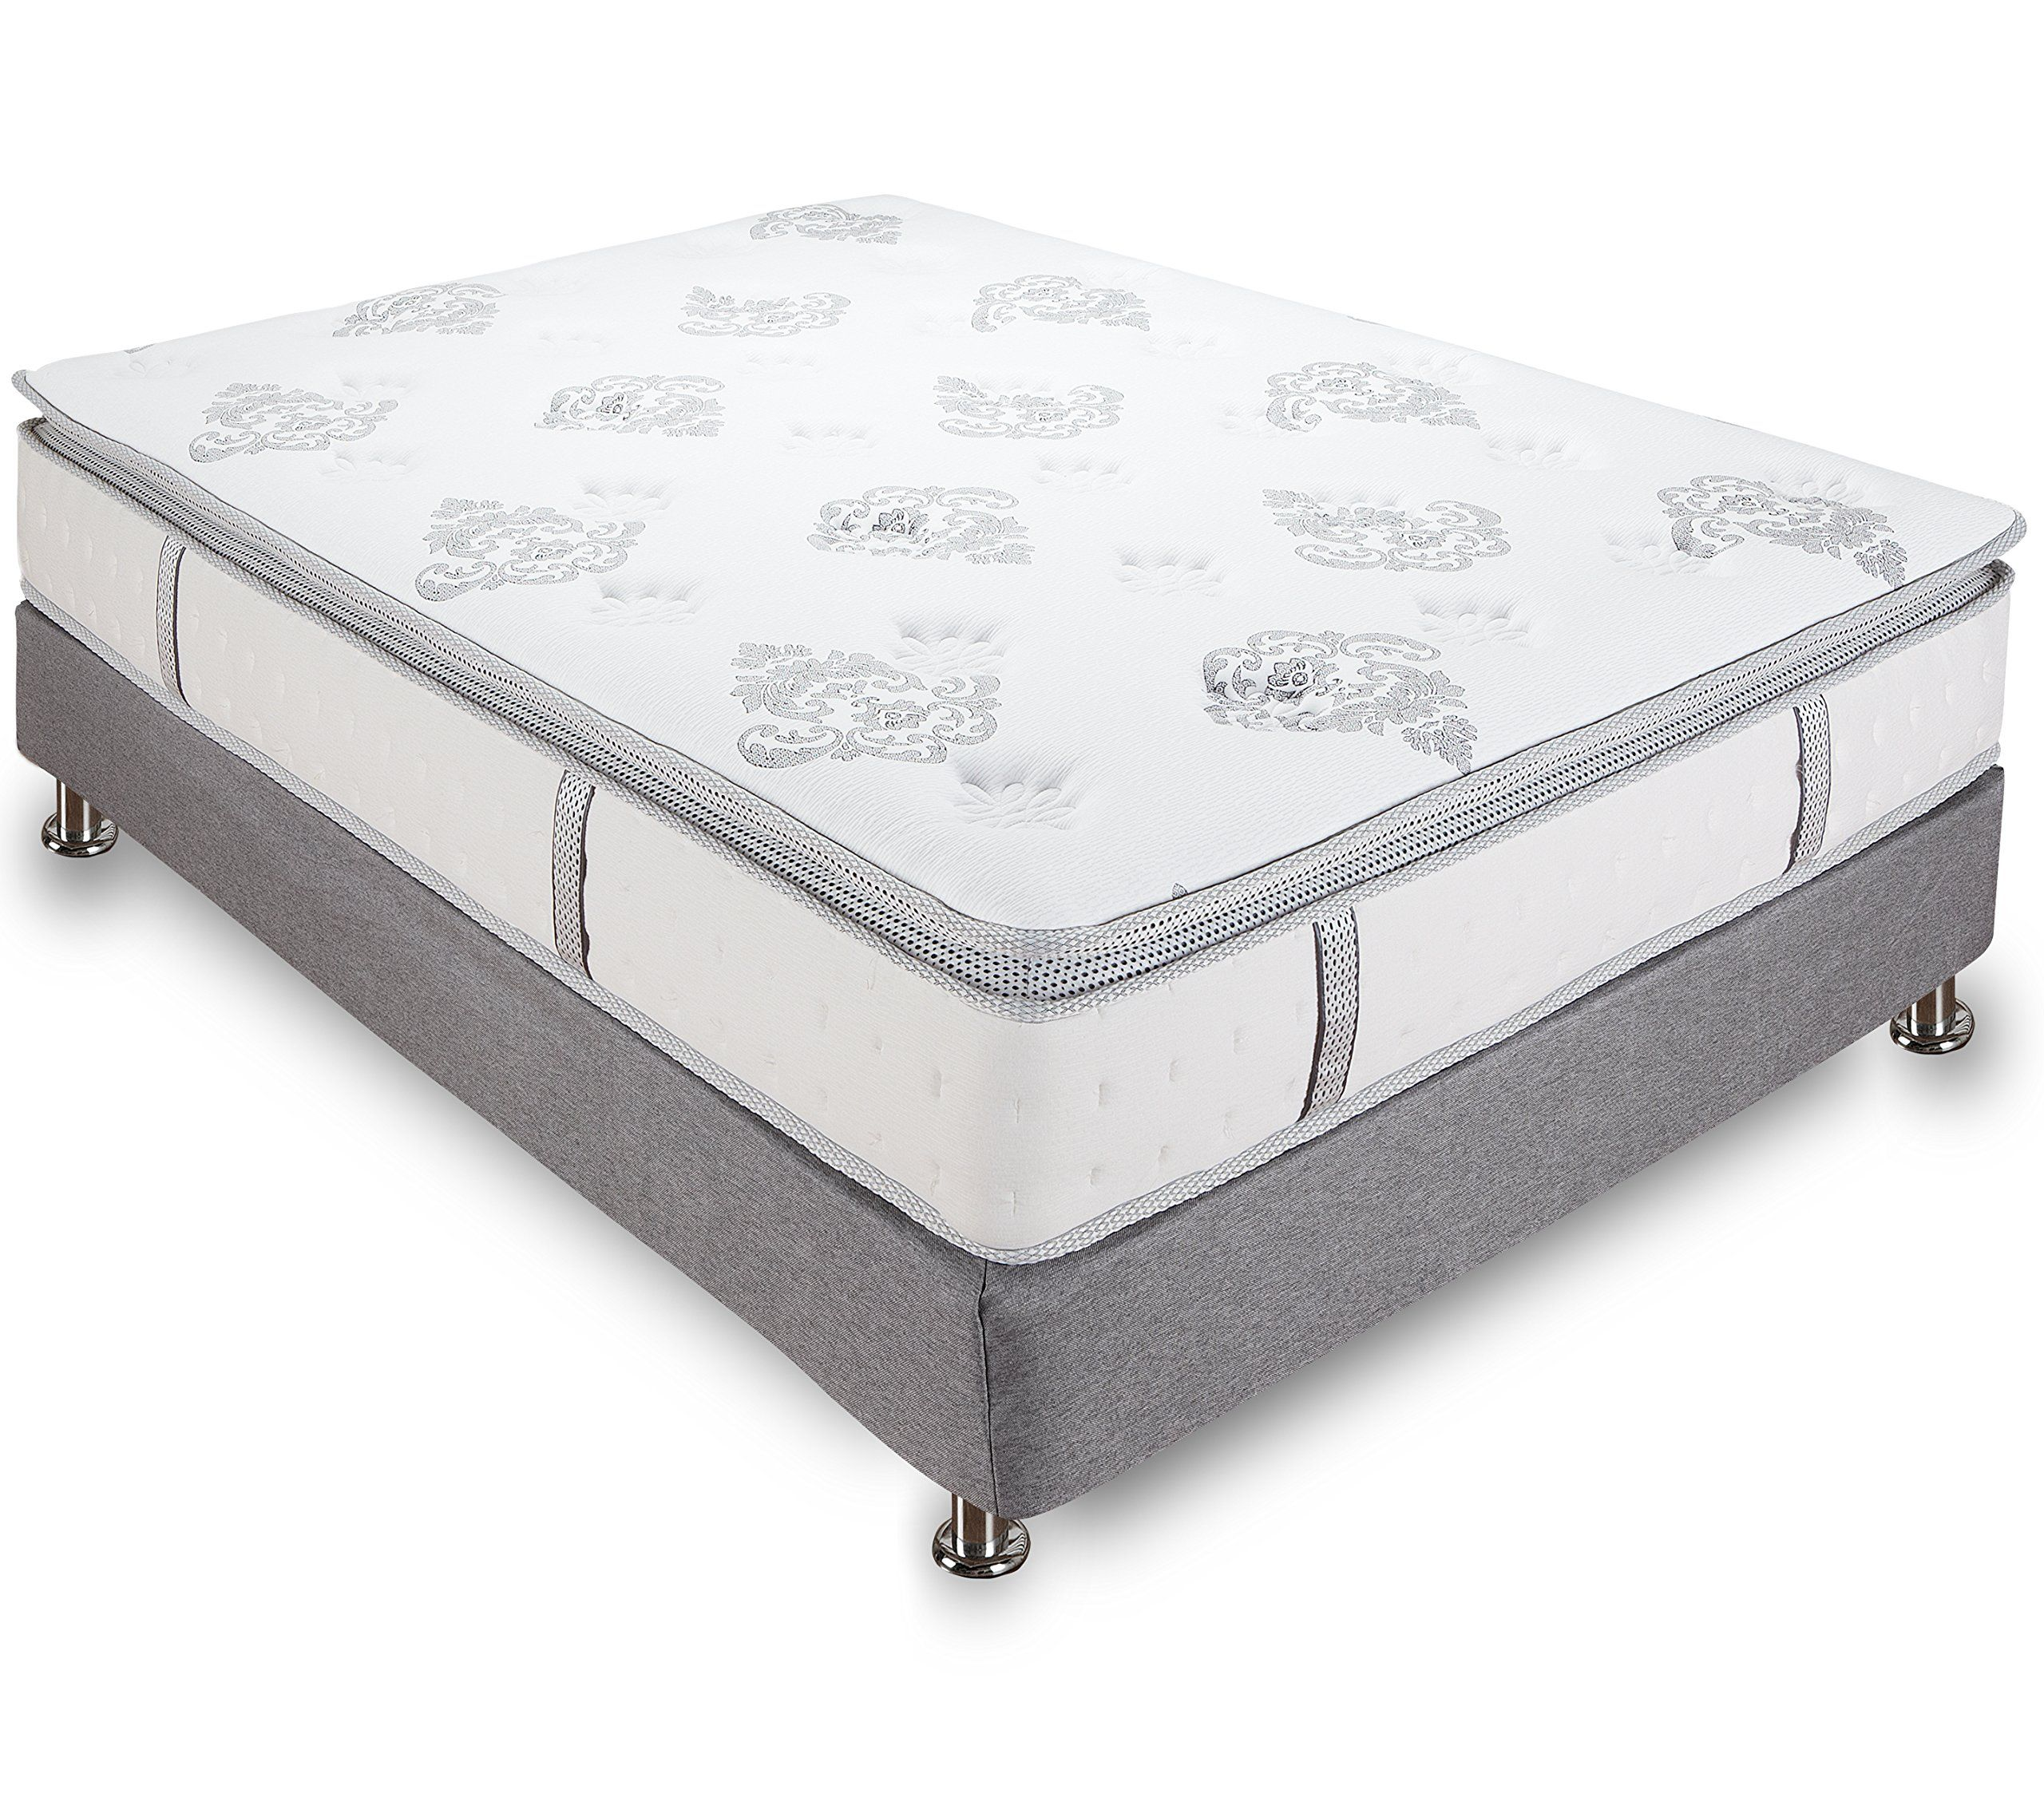 Classic Brands Mercer 12 Inch Hybrid Cool Gel Memory Foam And Innerspring Mattress Full Size Mattress Innerspring Mattresses Best Mattress